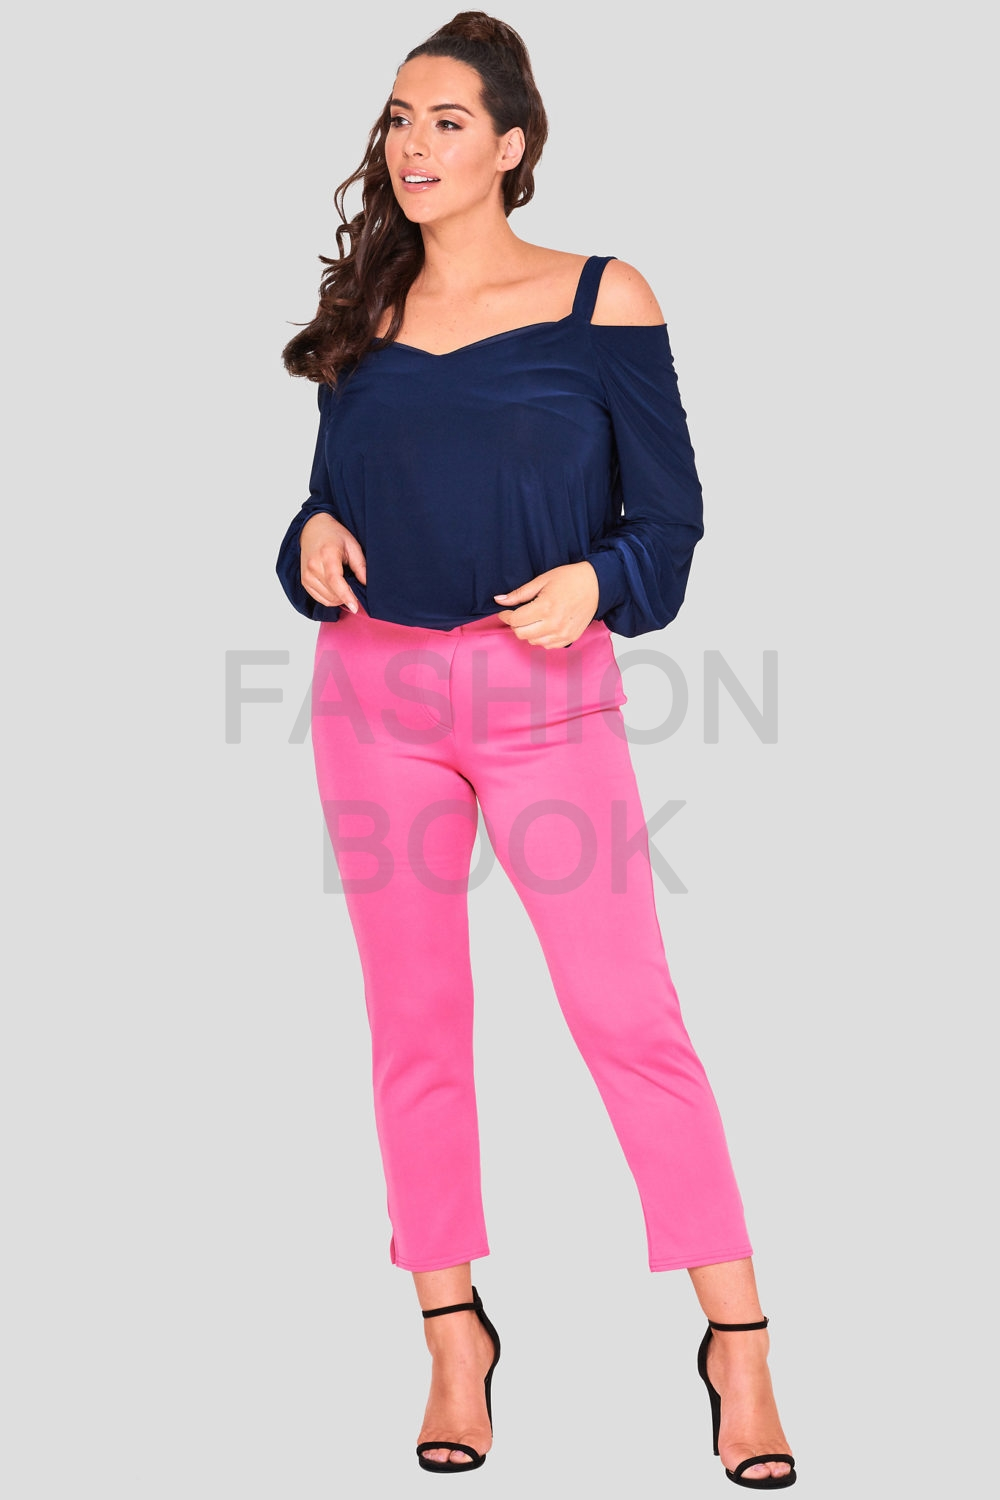 Cigarette Trousers Wholesale